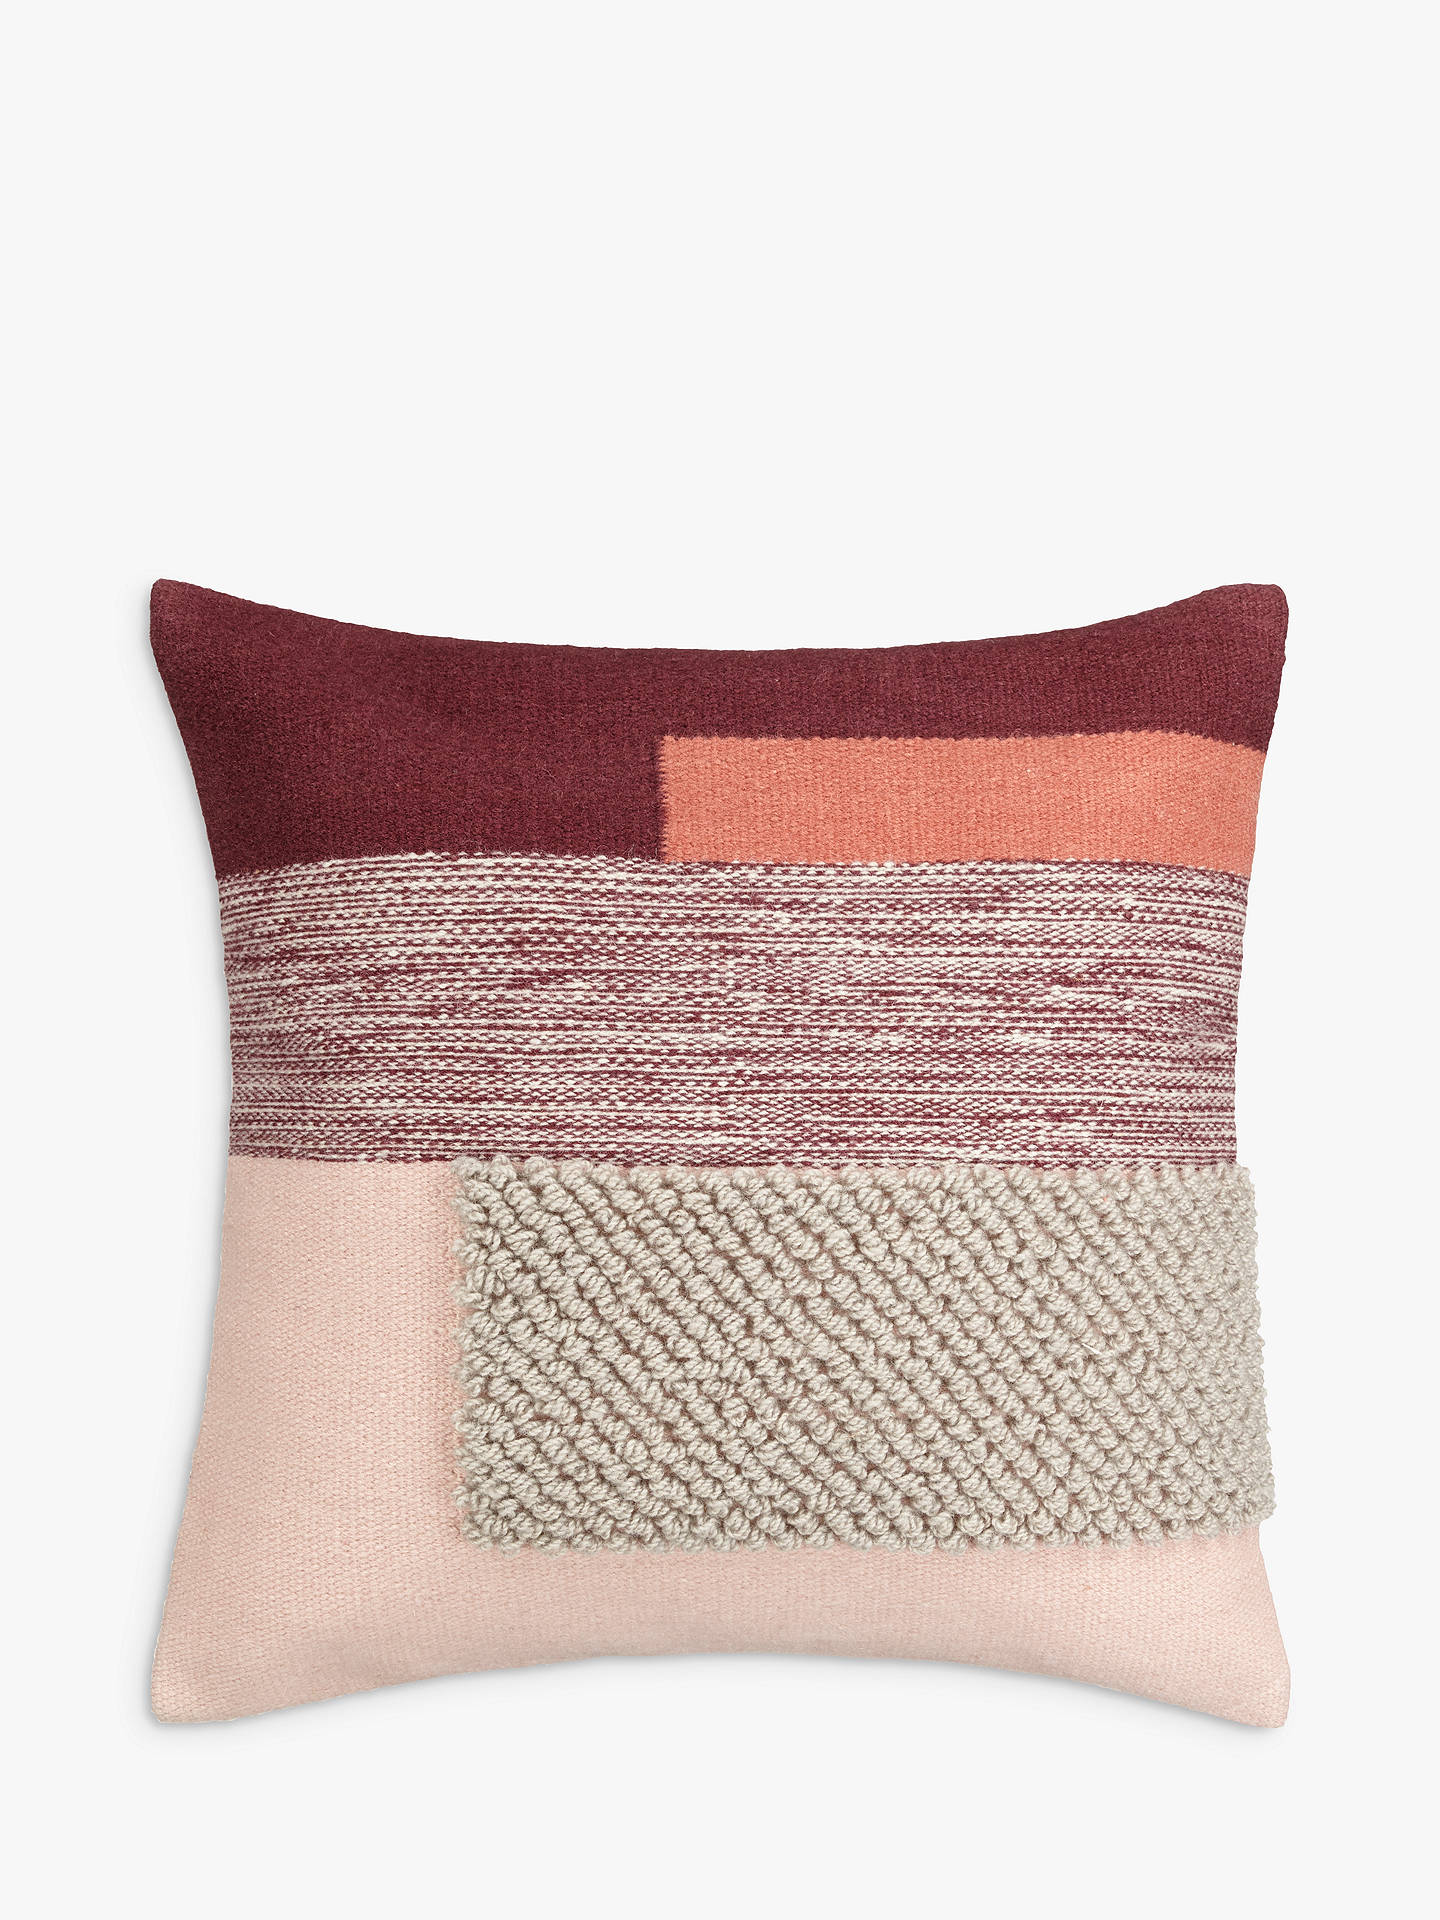 BuyDesign Project by John Lewis No.134 Cushion, Plaster Online at johnlewis.com